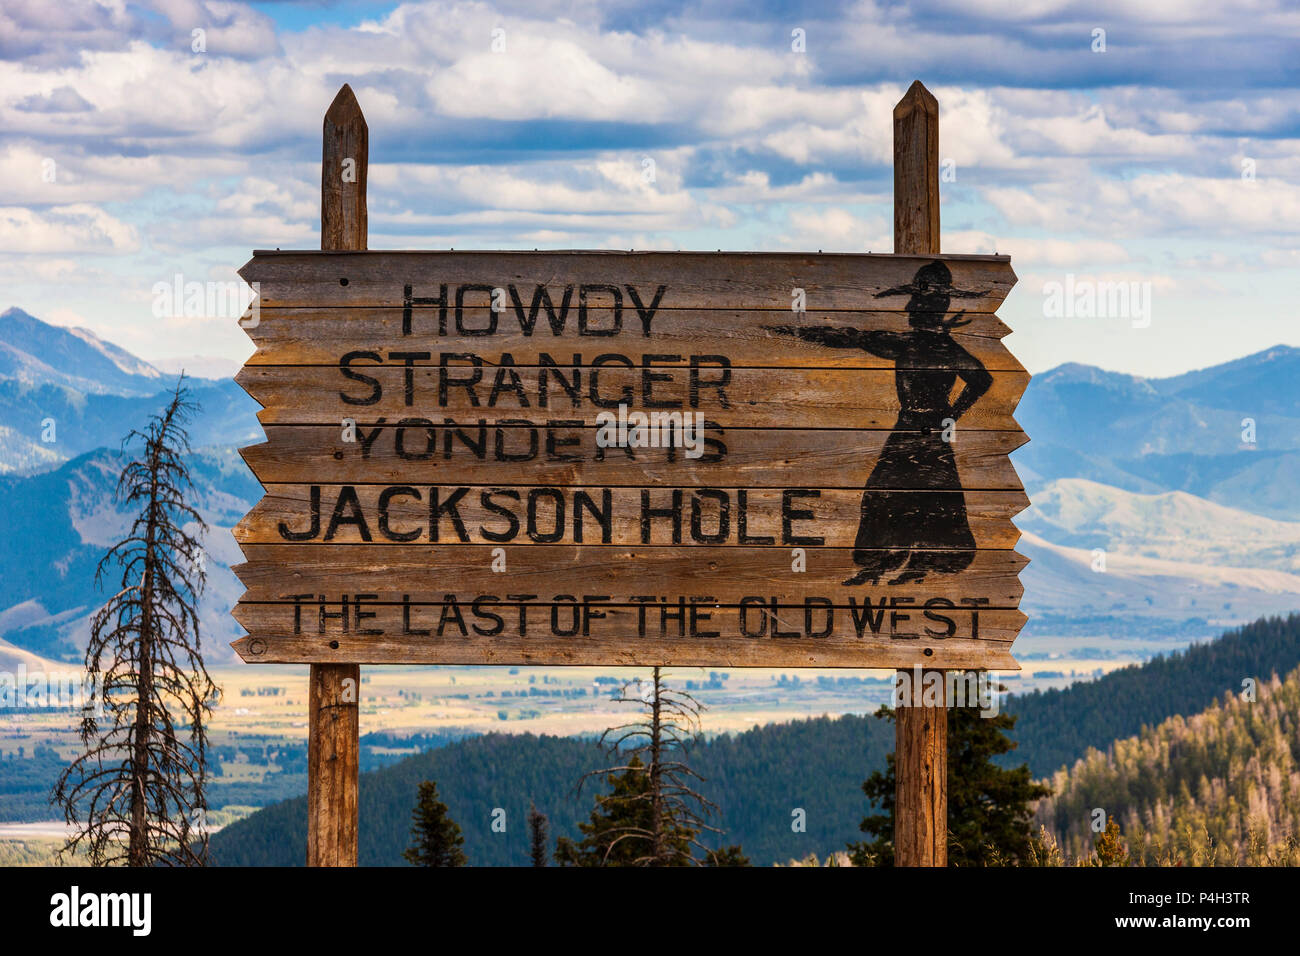 Sign at pass through mountains from Idaho to Wyoming, with view of Jackson Hole from 8400 feet. - Stock Image